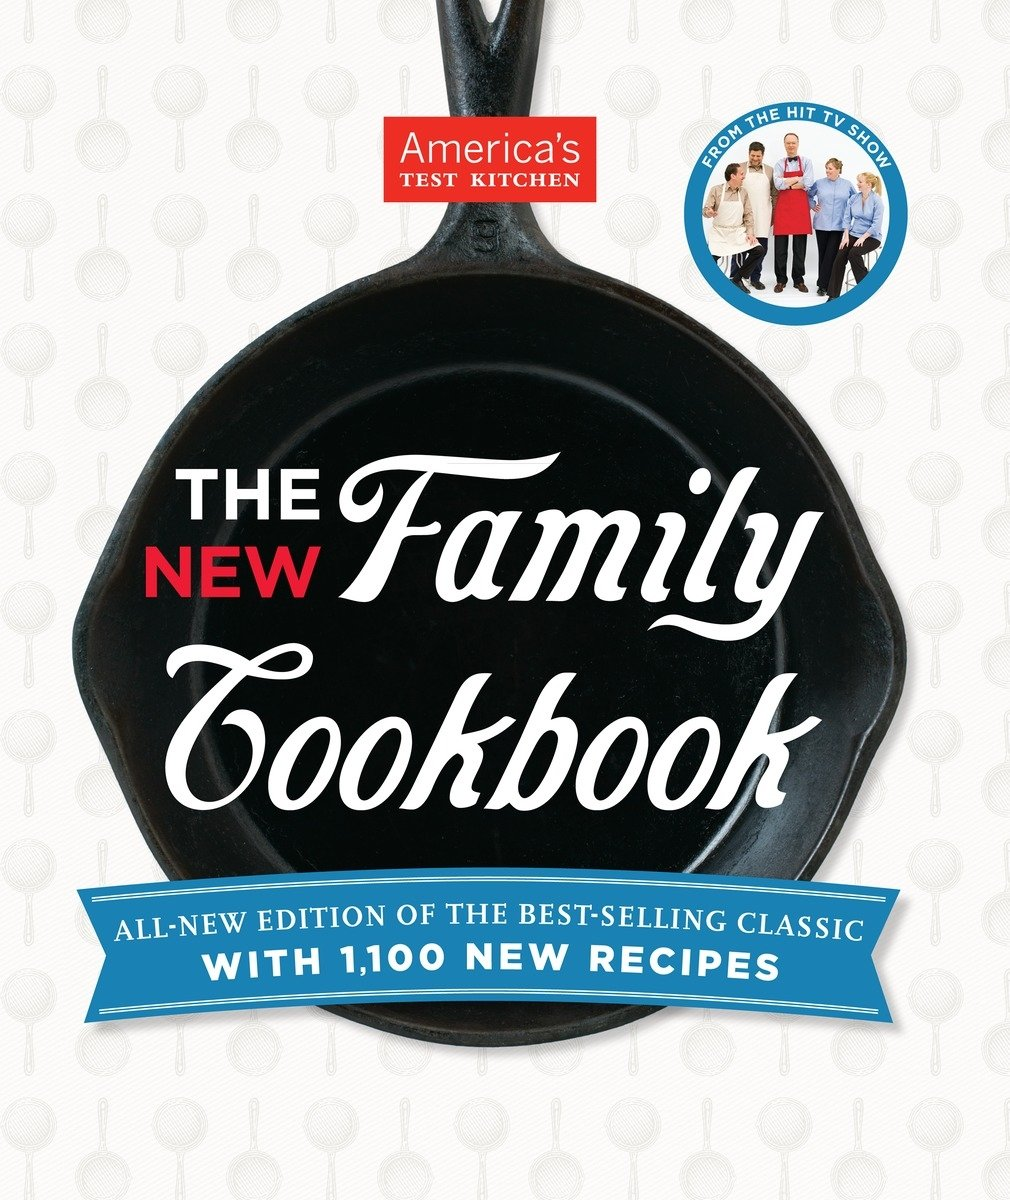 The New Family Cookbook by America's Test Kitchen